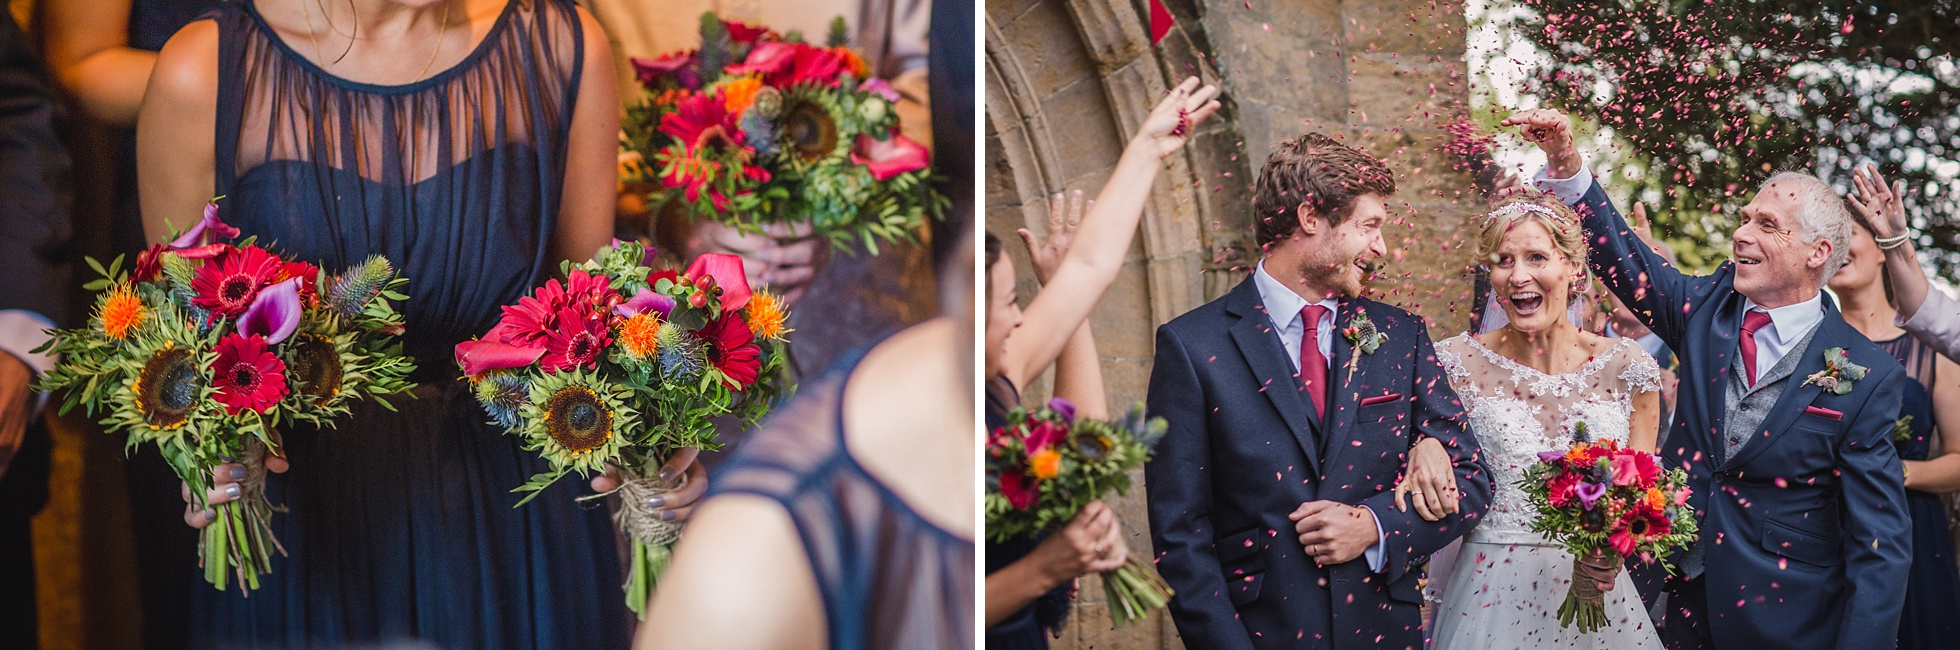 Wedding at All Hallows Church and Grittenham Barn for Steffi and Matt